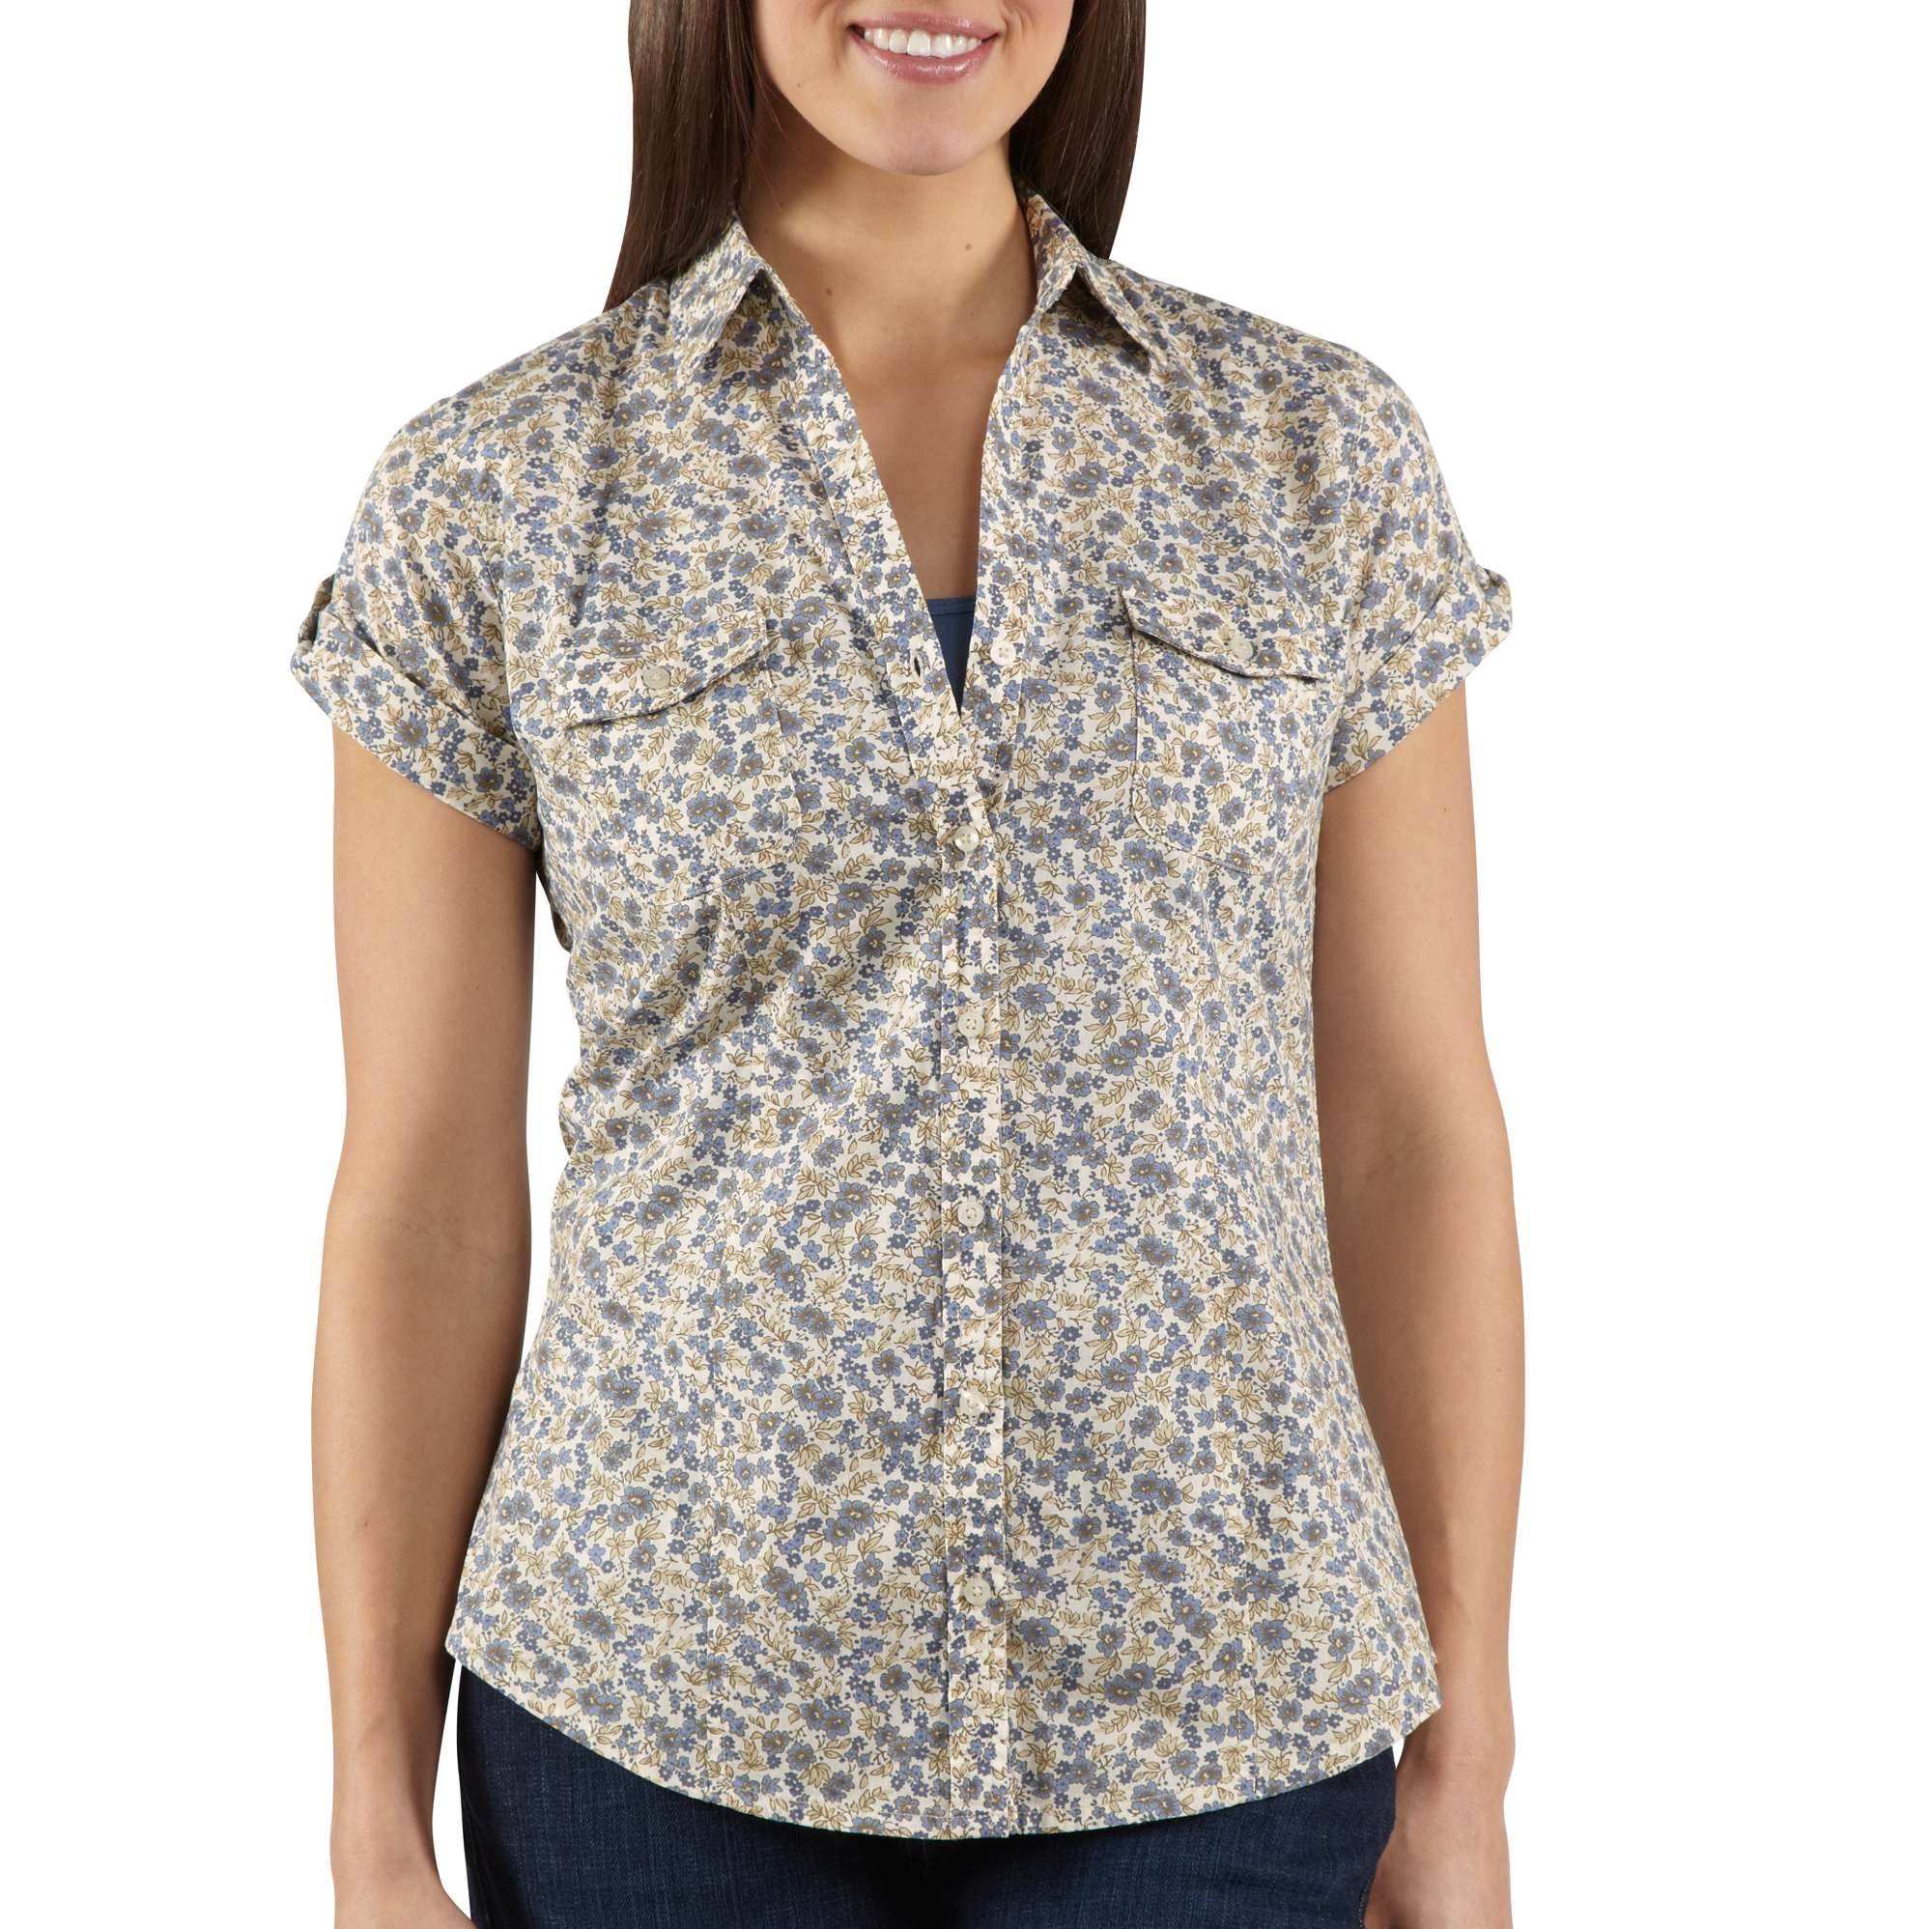 Carhartt womens short sleeve printed camp shirt ws036 ebay for Printed short sleeve shirts